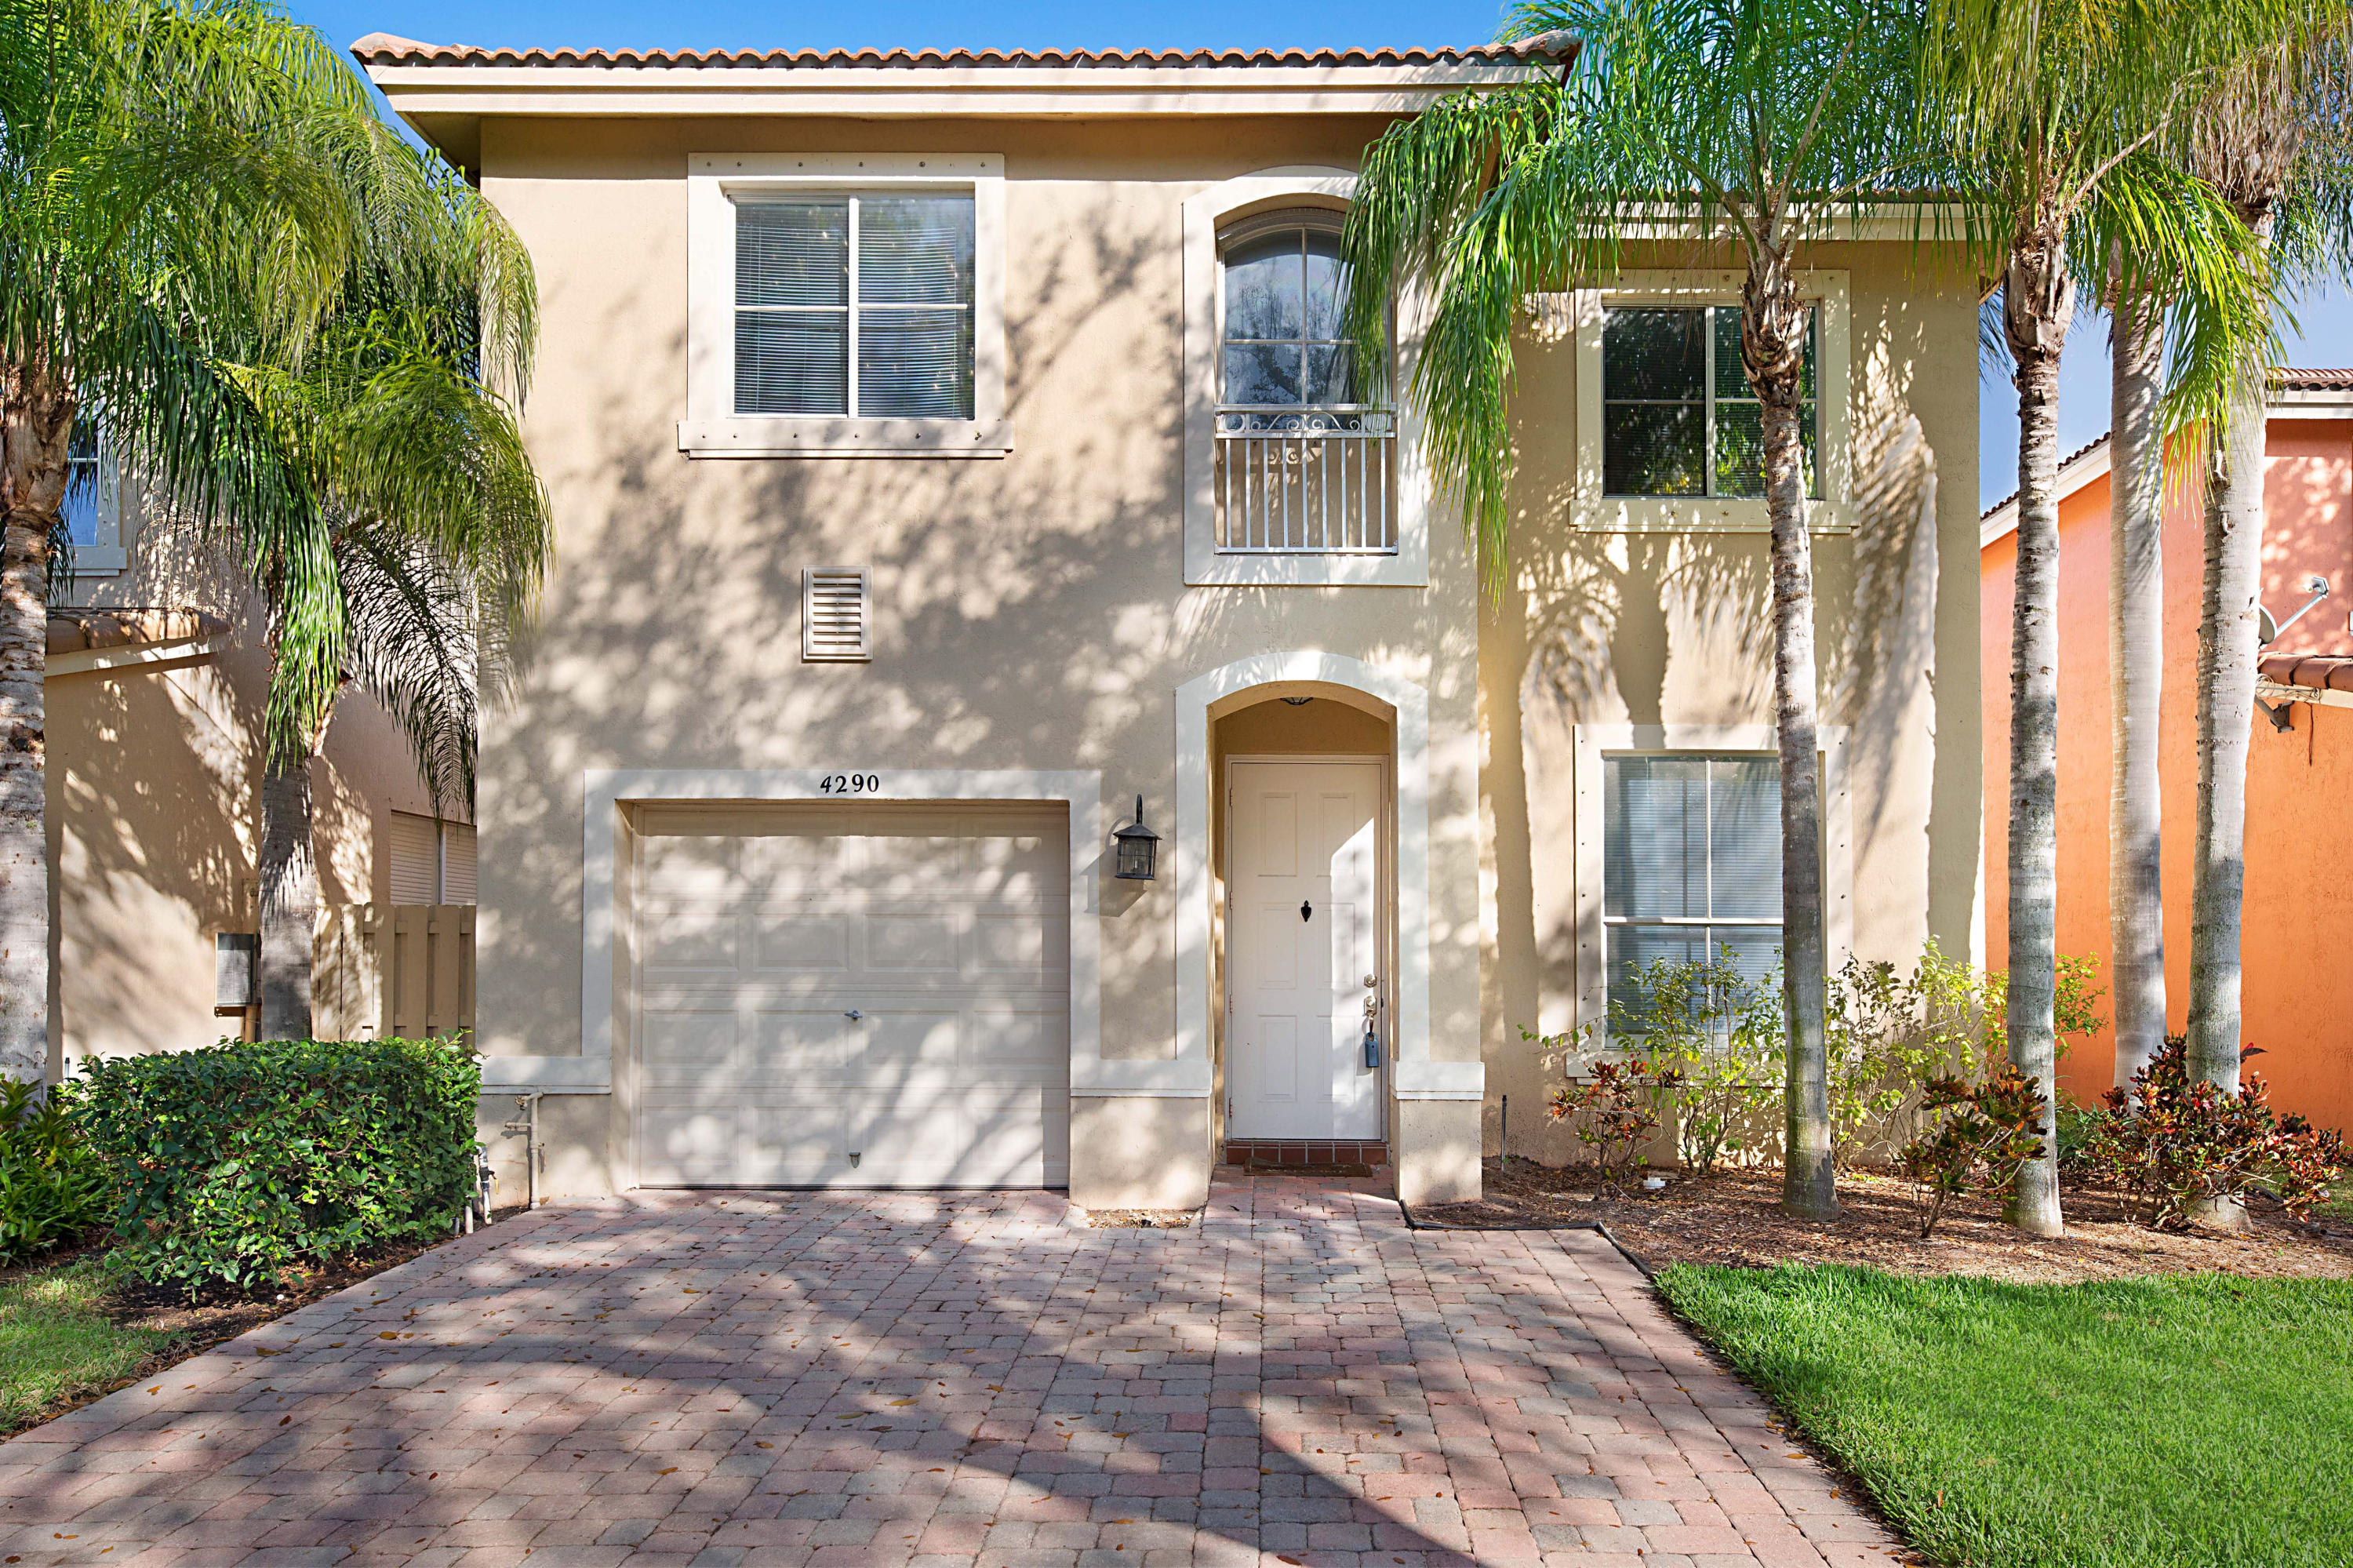 4290 Lake Lucerne Circle, West Palm Beach, Florida 33409, 4 Bedrooms Bedrooms, ,2.1 BathroomsBathrooms,F,Single family,Lake Lucerne,RX-10617239